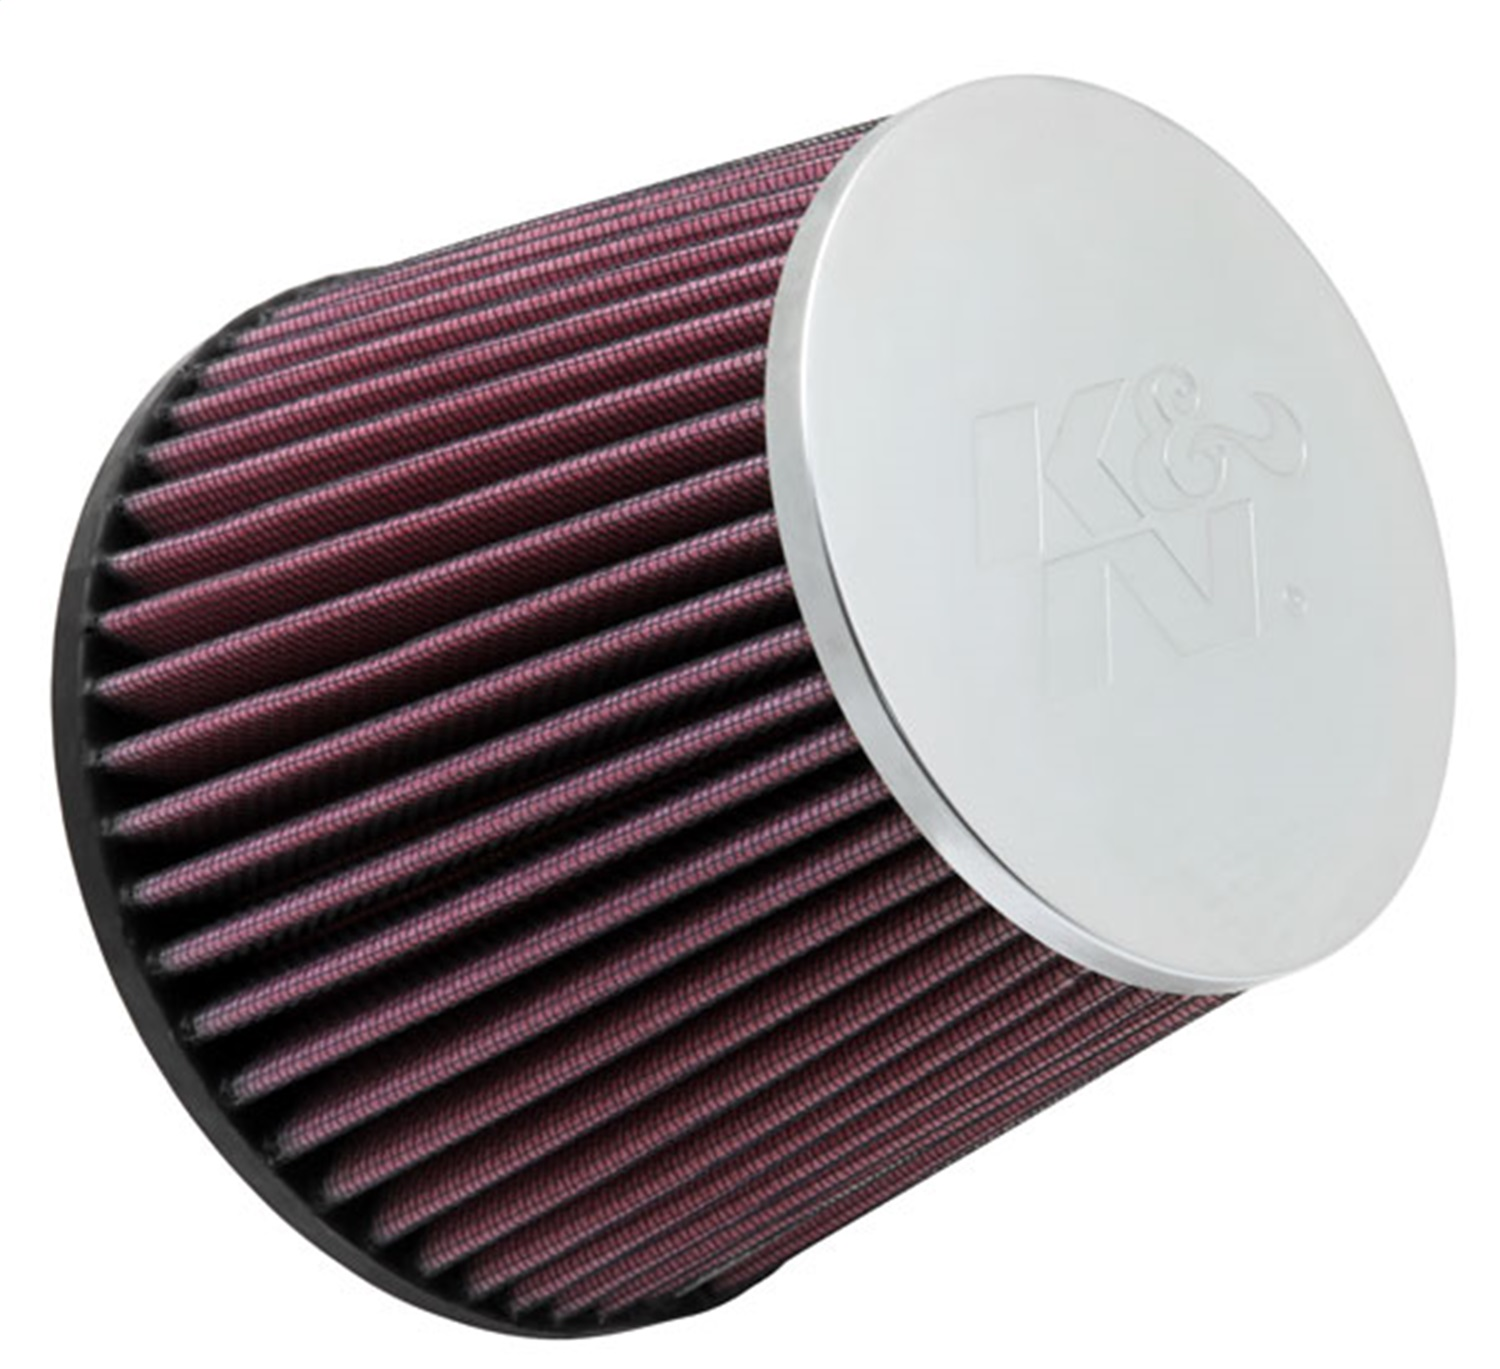 K/&N Filters R-2300 Universal Air Cleaner Assembly